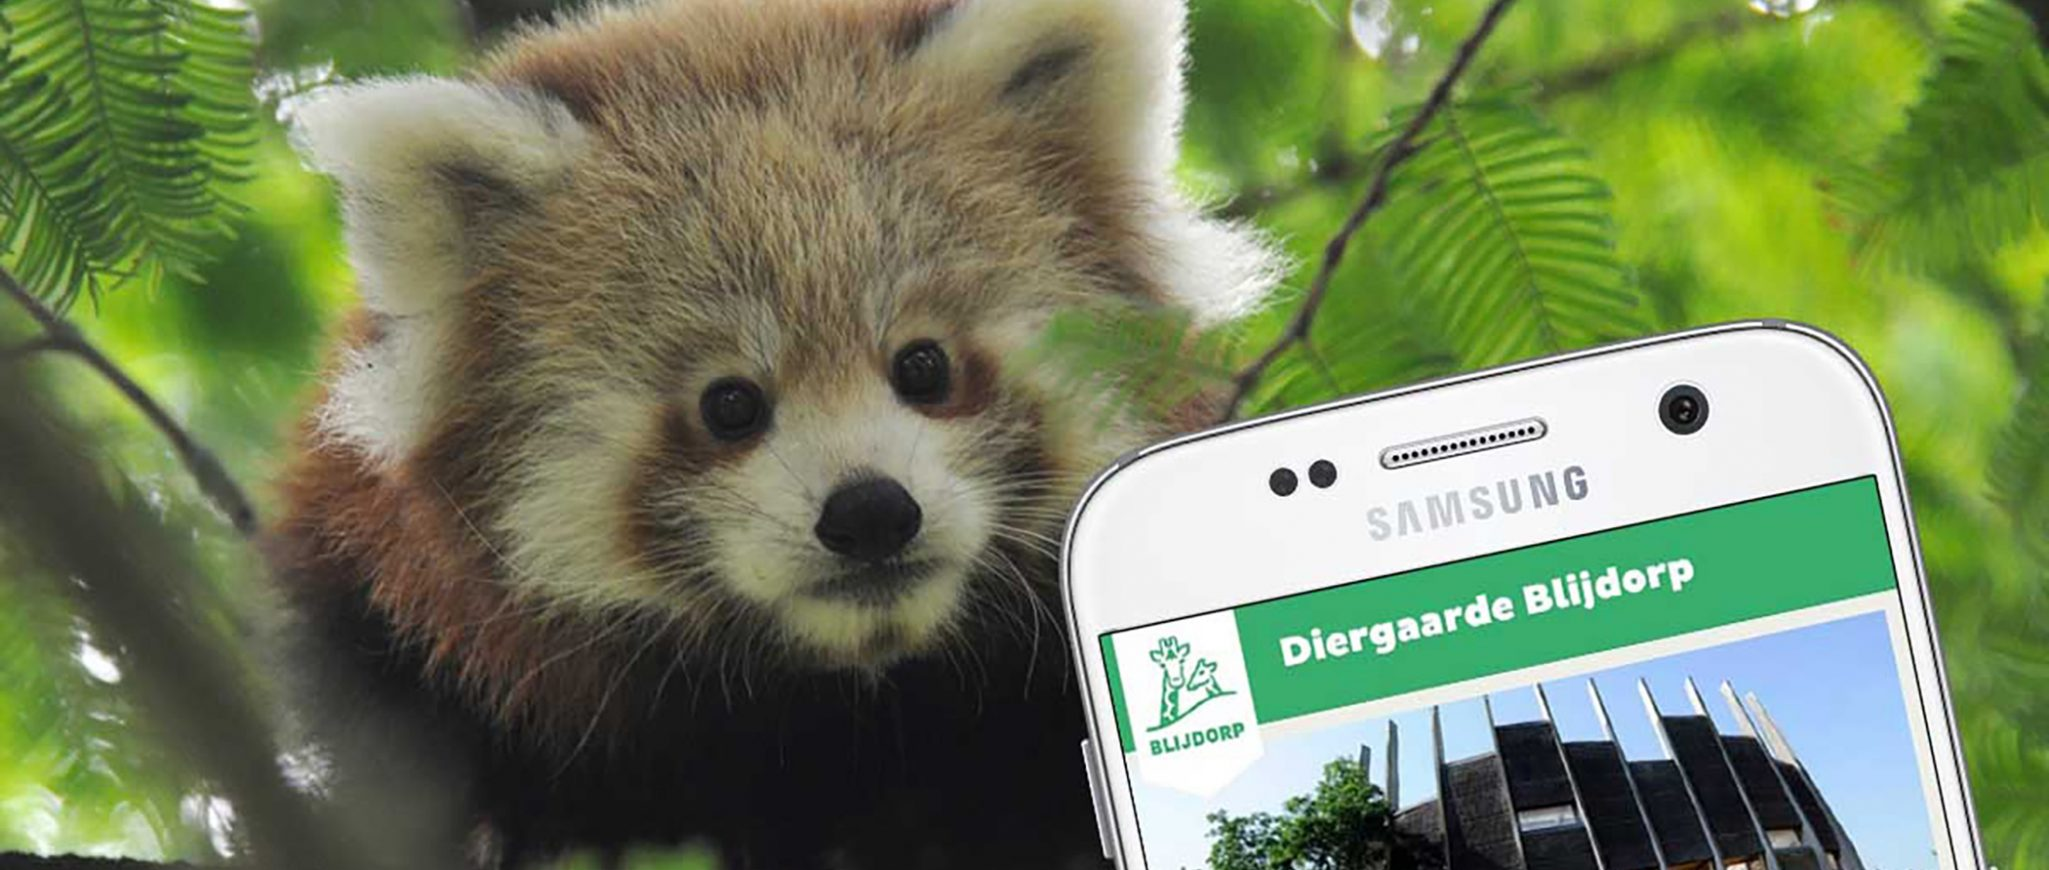 disover more in our zoo with the free Blijdorp app